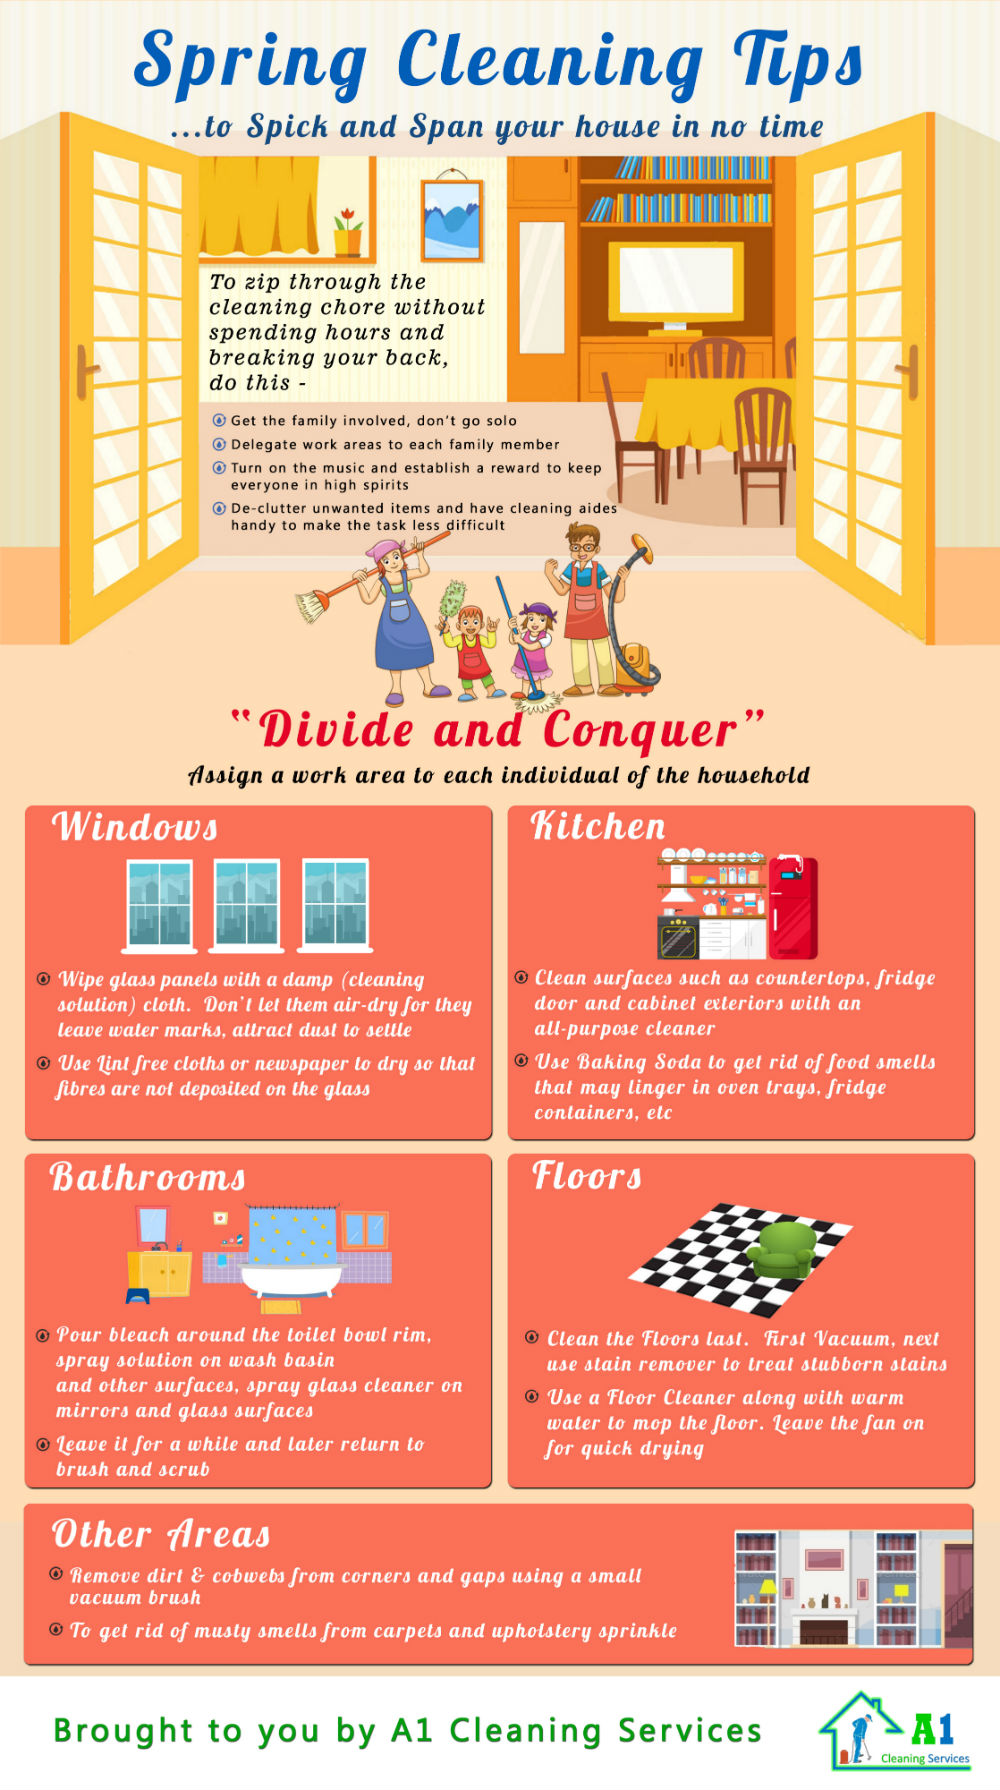 Cleaning Tips for CNY Spring Cleaning